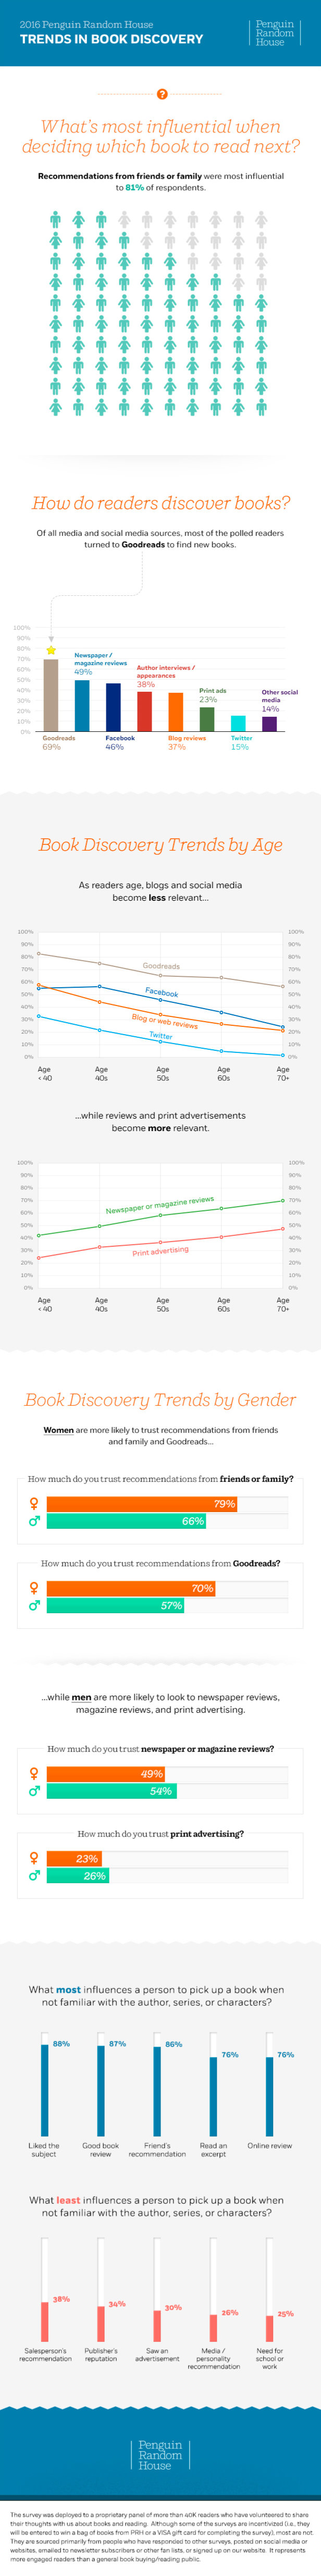 How do readers discover #books #infographic